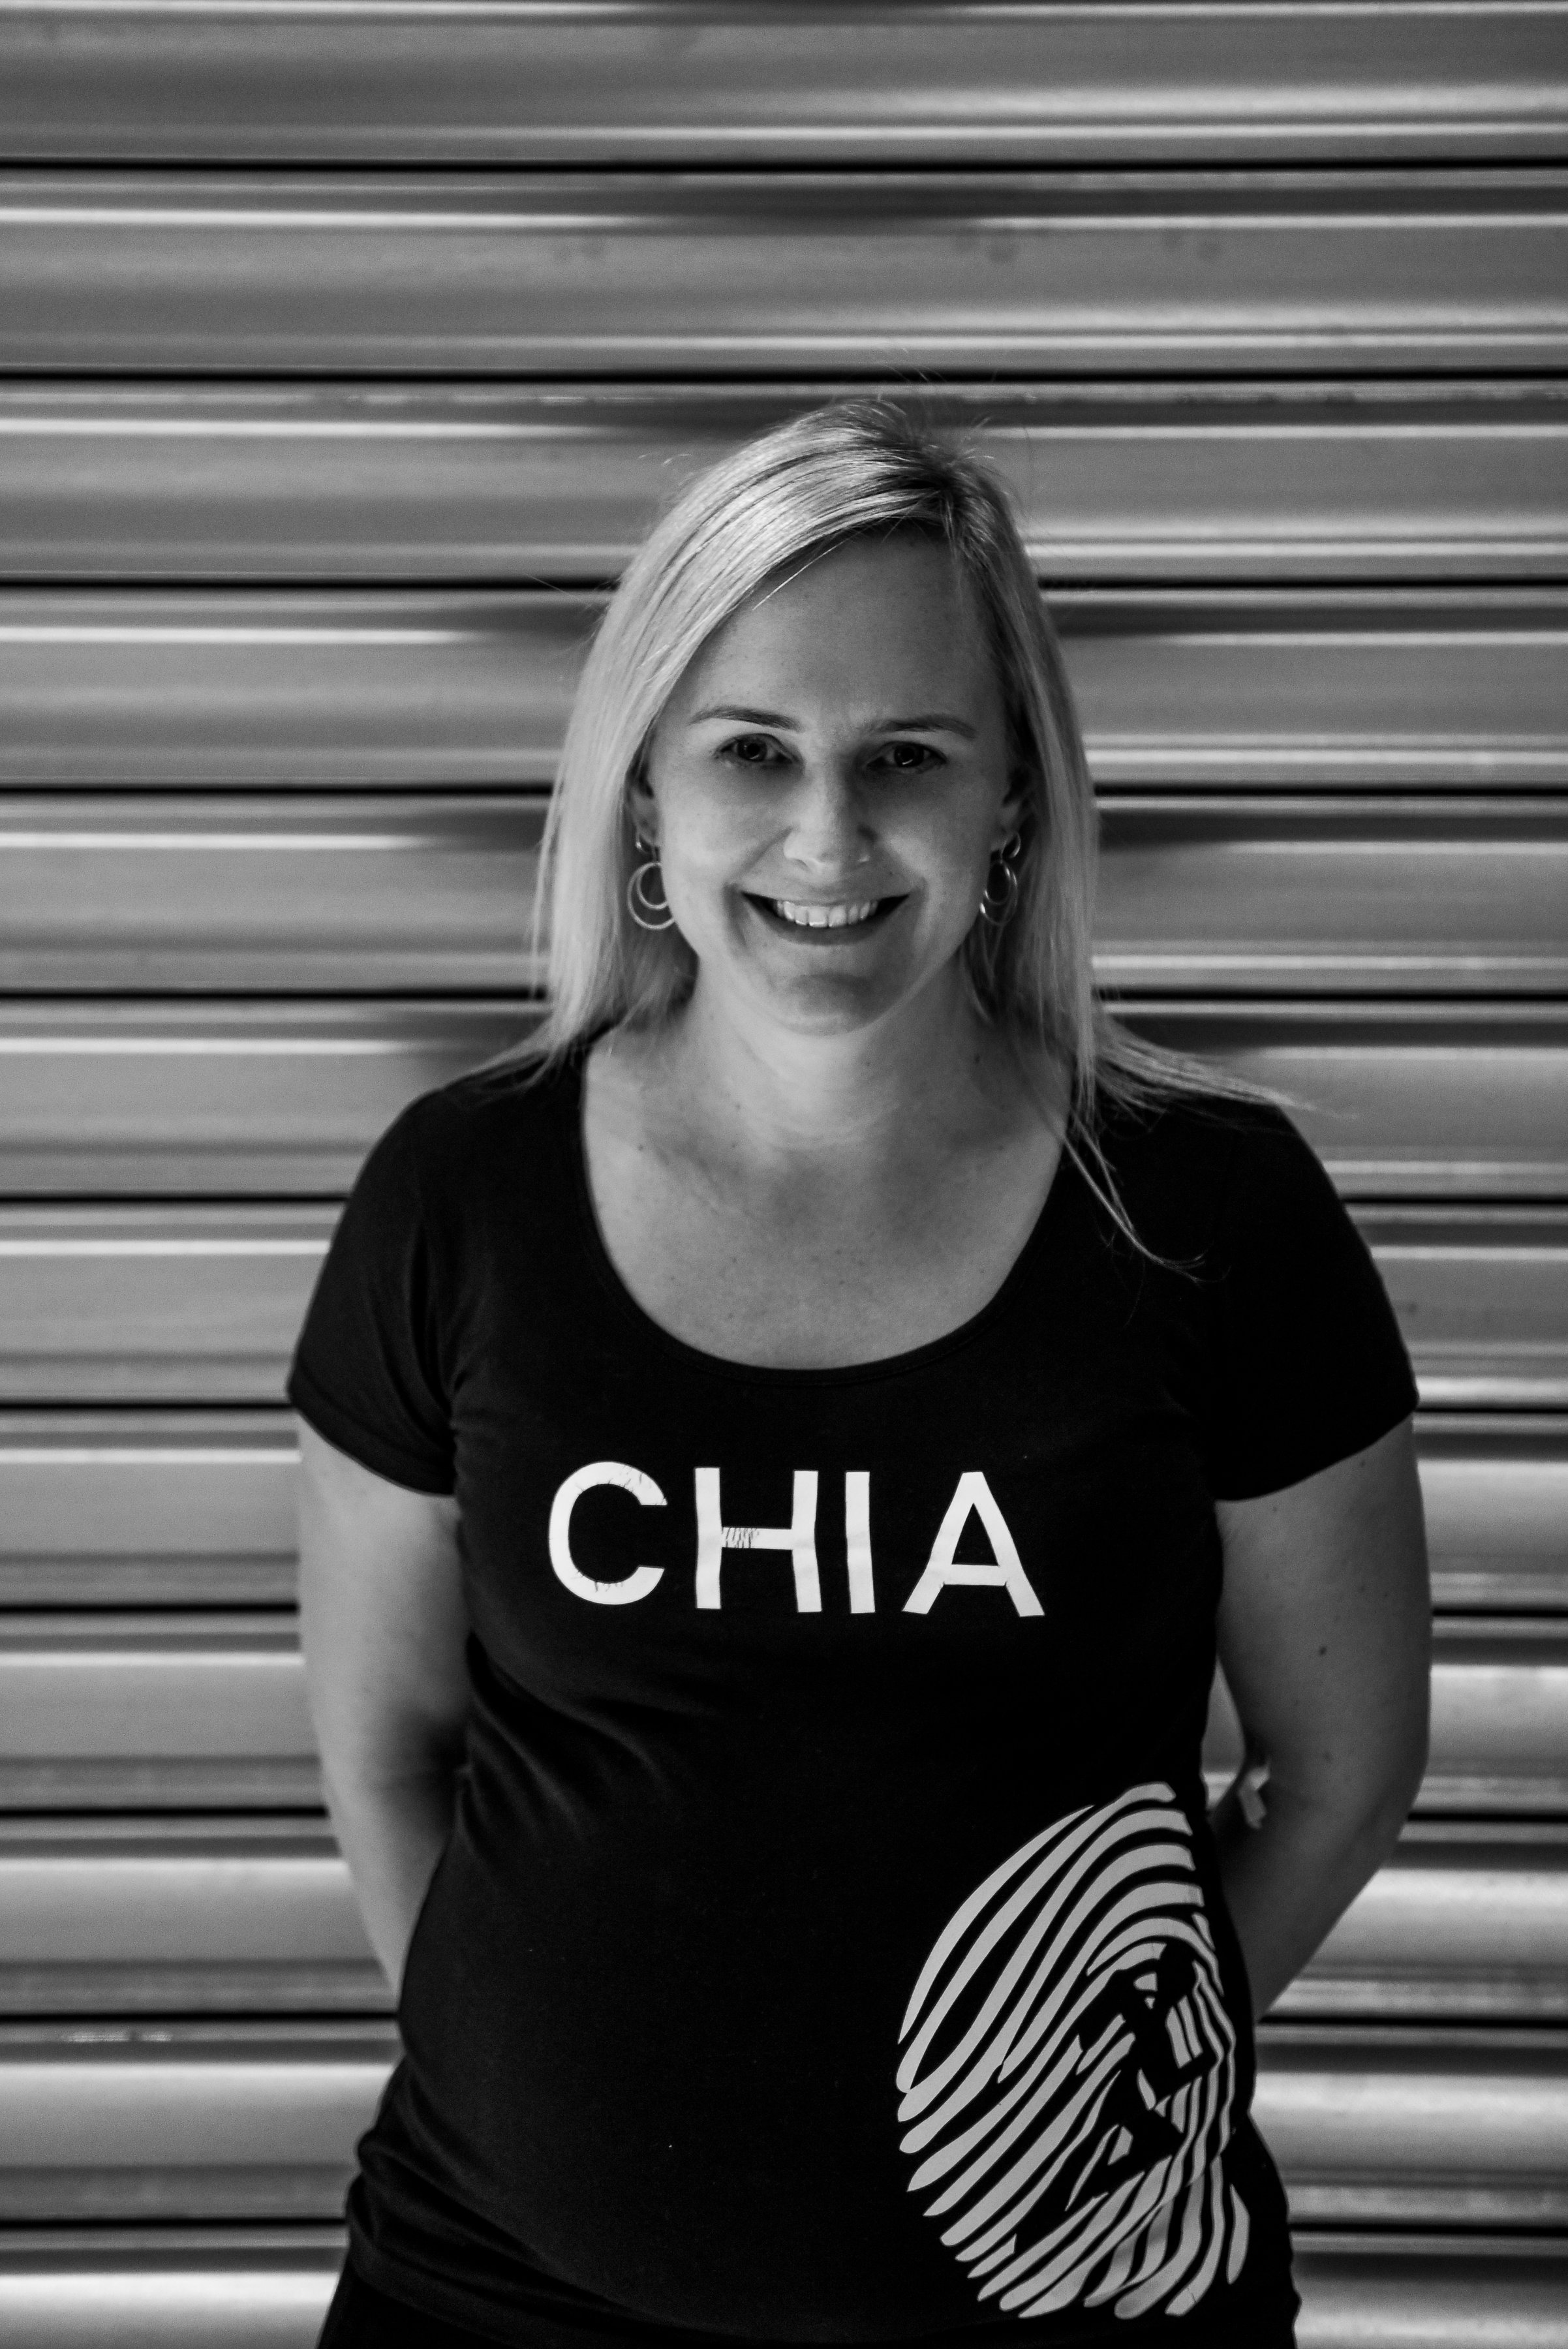 Lisa Page  I like to keep my emails up to date and dealt with. That is why when you place an order at Chia Sisters you will find the courier dropping the world's healthiest beverages to your doorstep within 2 days of ordering and if it is not there on time I hunt it down for you!  I love to keep myself busy which usually involves cross fit, netball or chasing my tiny humans around while working part time with the best team in town - Chia Sisters.